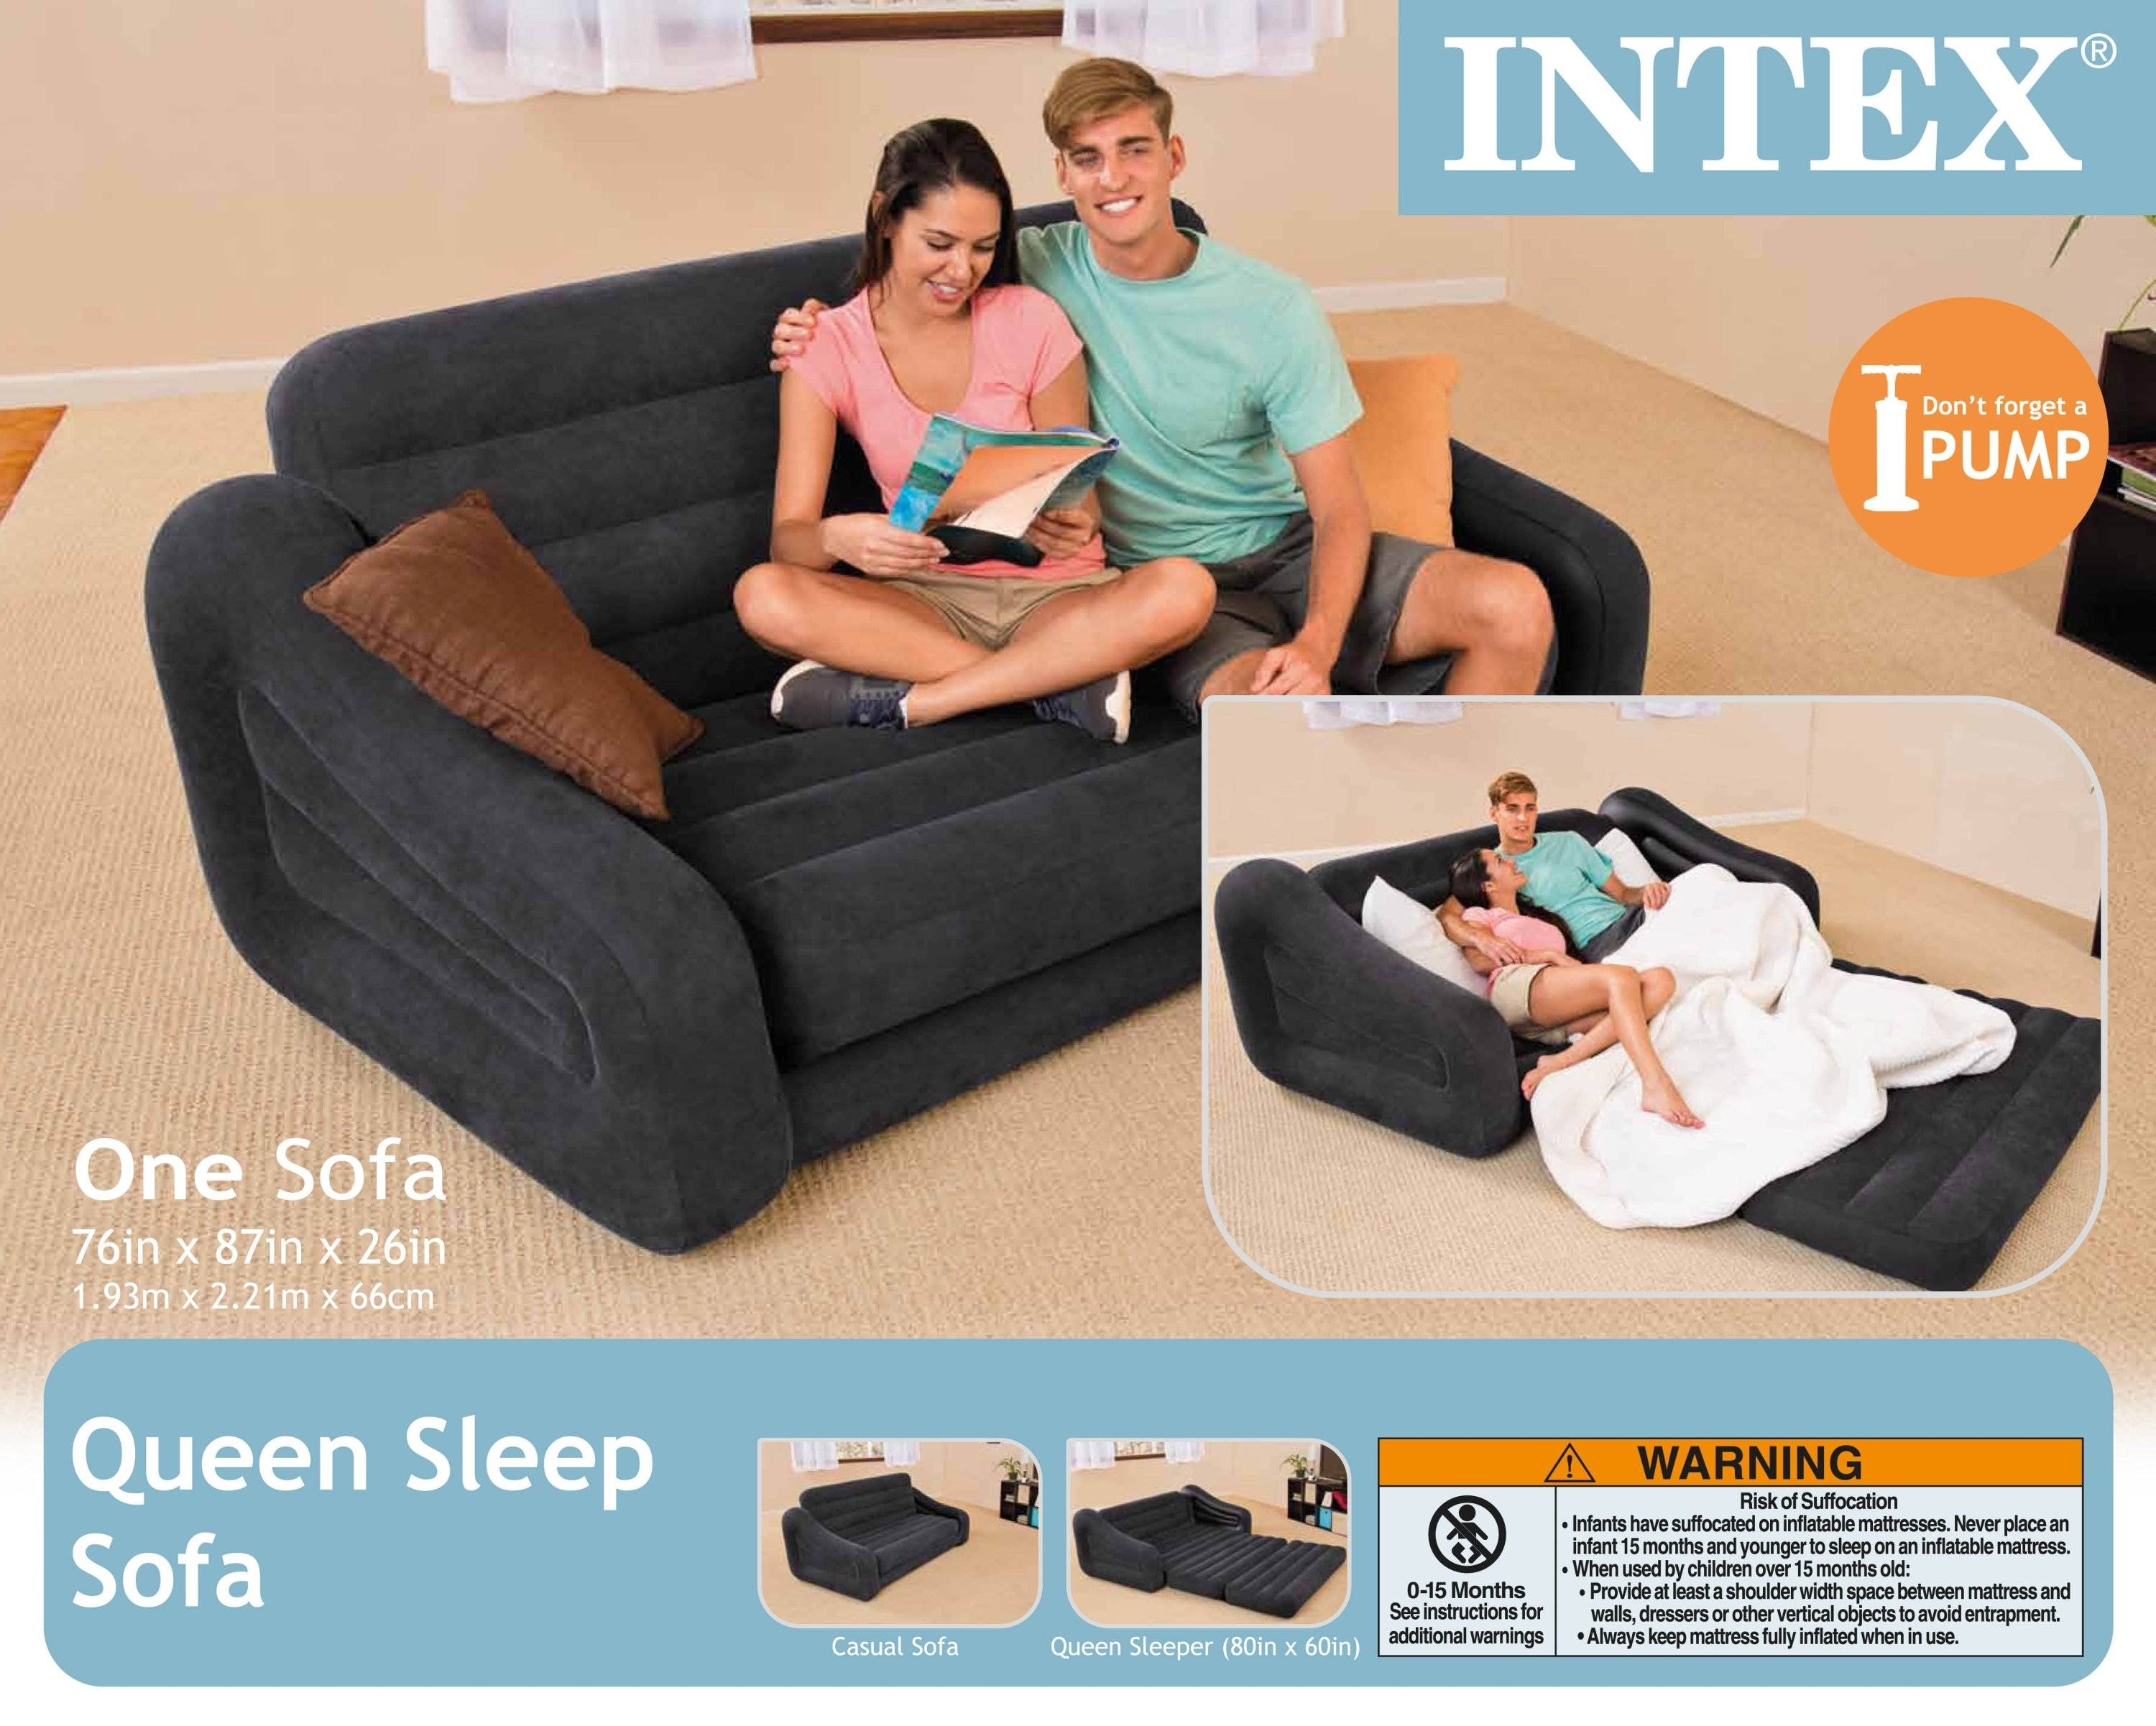 Intex Inflatable Pull Out Sofa & Queen Bed Mattress Sleeper W/ Ac Throughout Intex Air Sofa Beds (View 9 of 15)